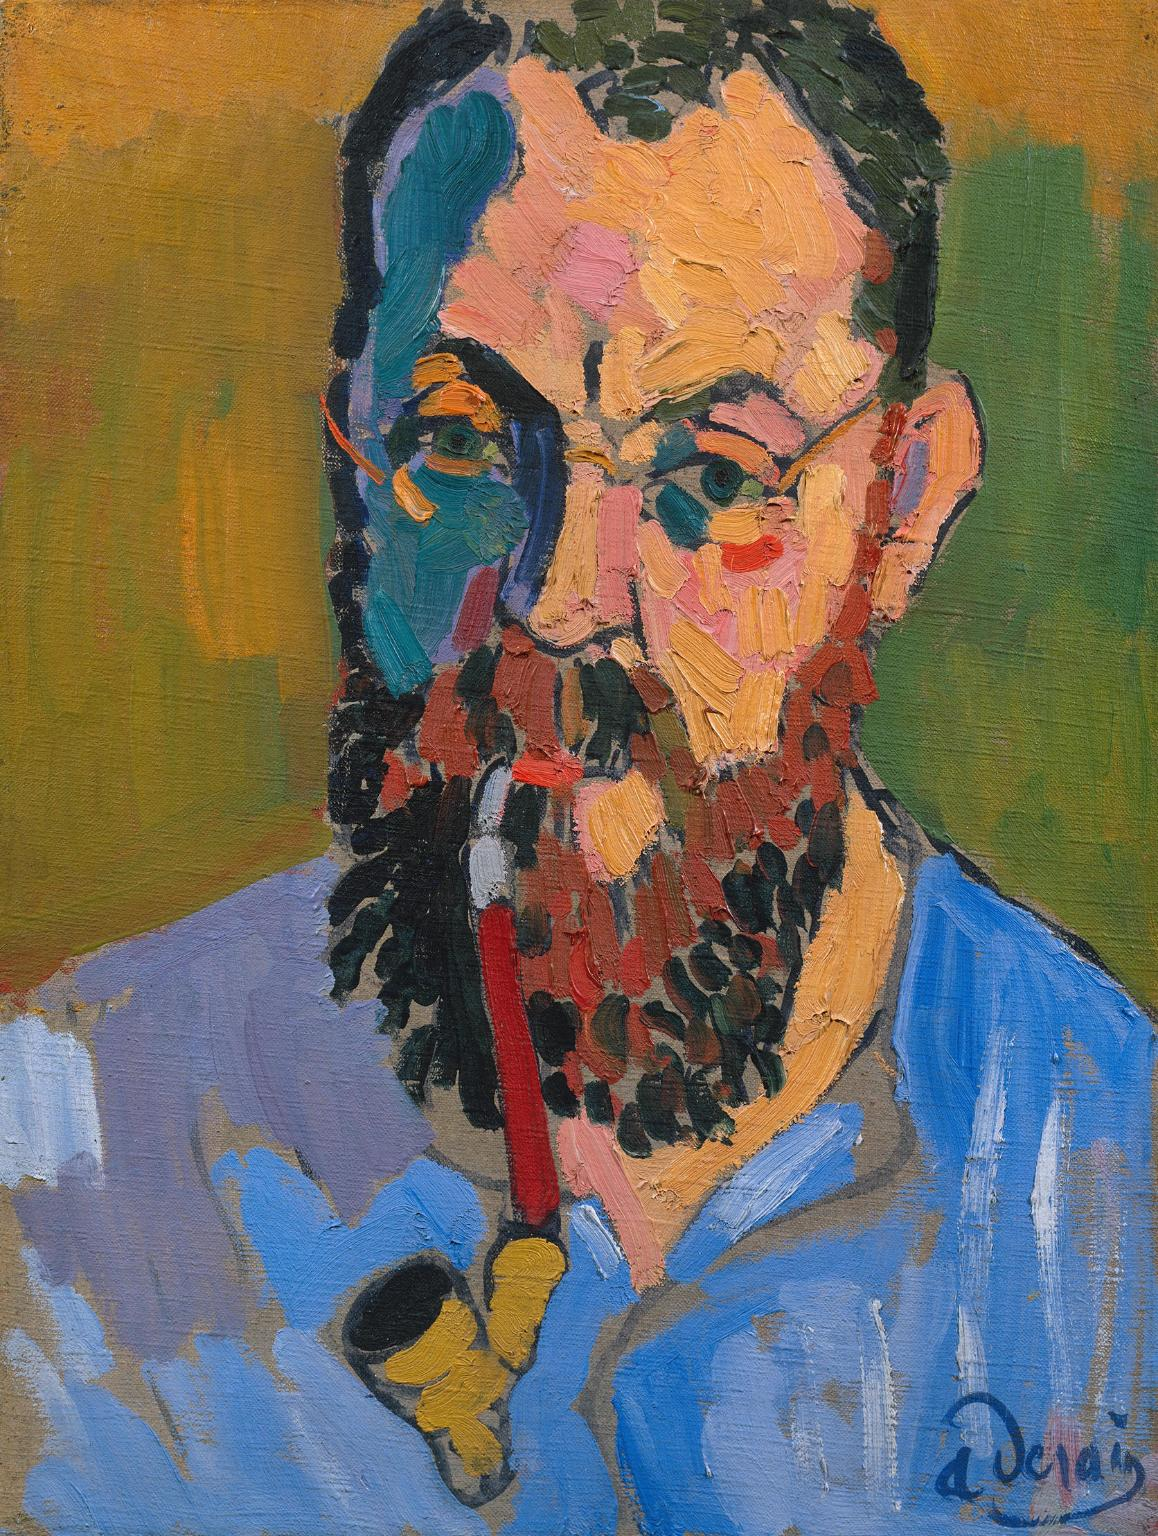 Henri Matisse 1905 Andr? Derain 1880-1954 Purchased 1958 http://www.tate.org.uk/art/work/T00165